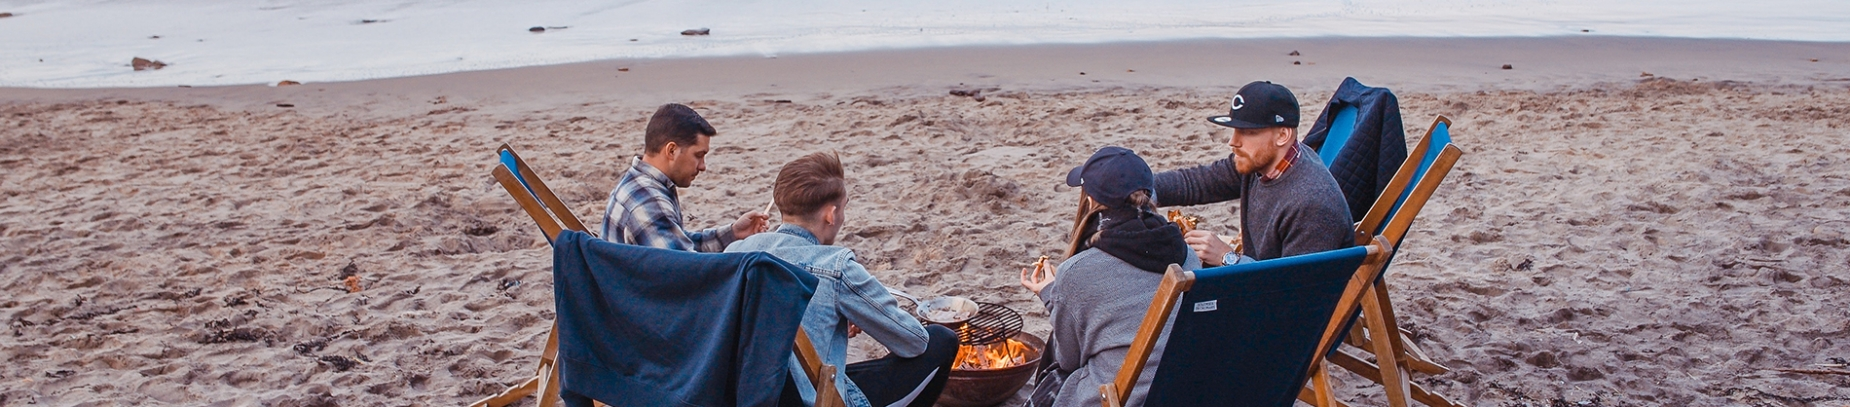 A group of friends sat around a fire on the beach